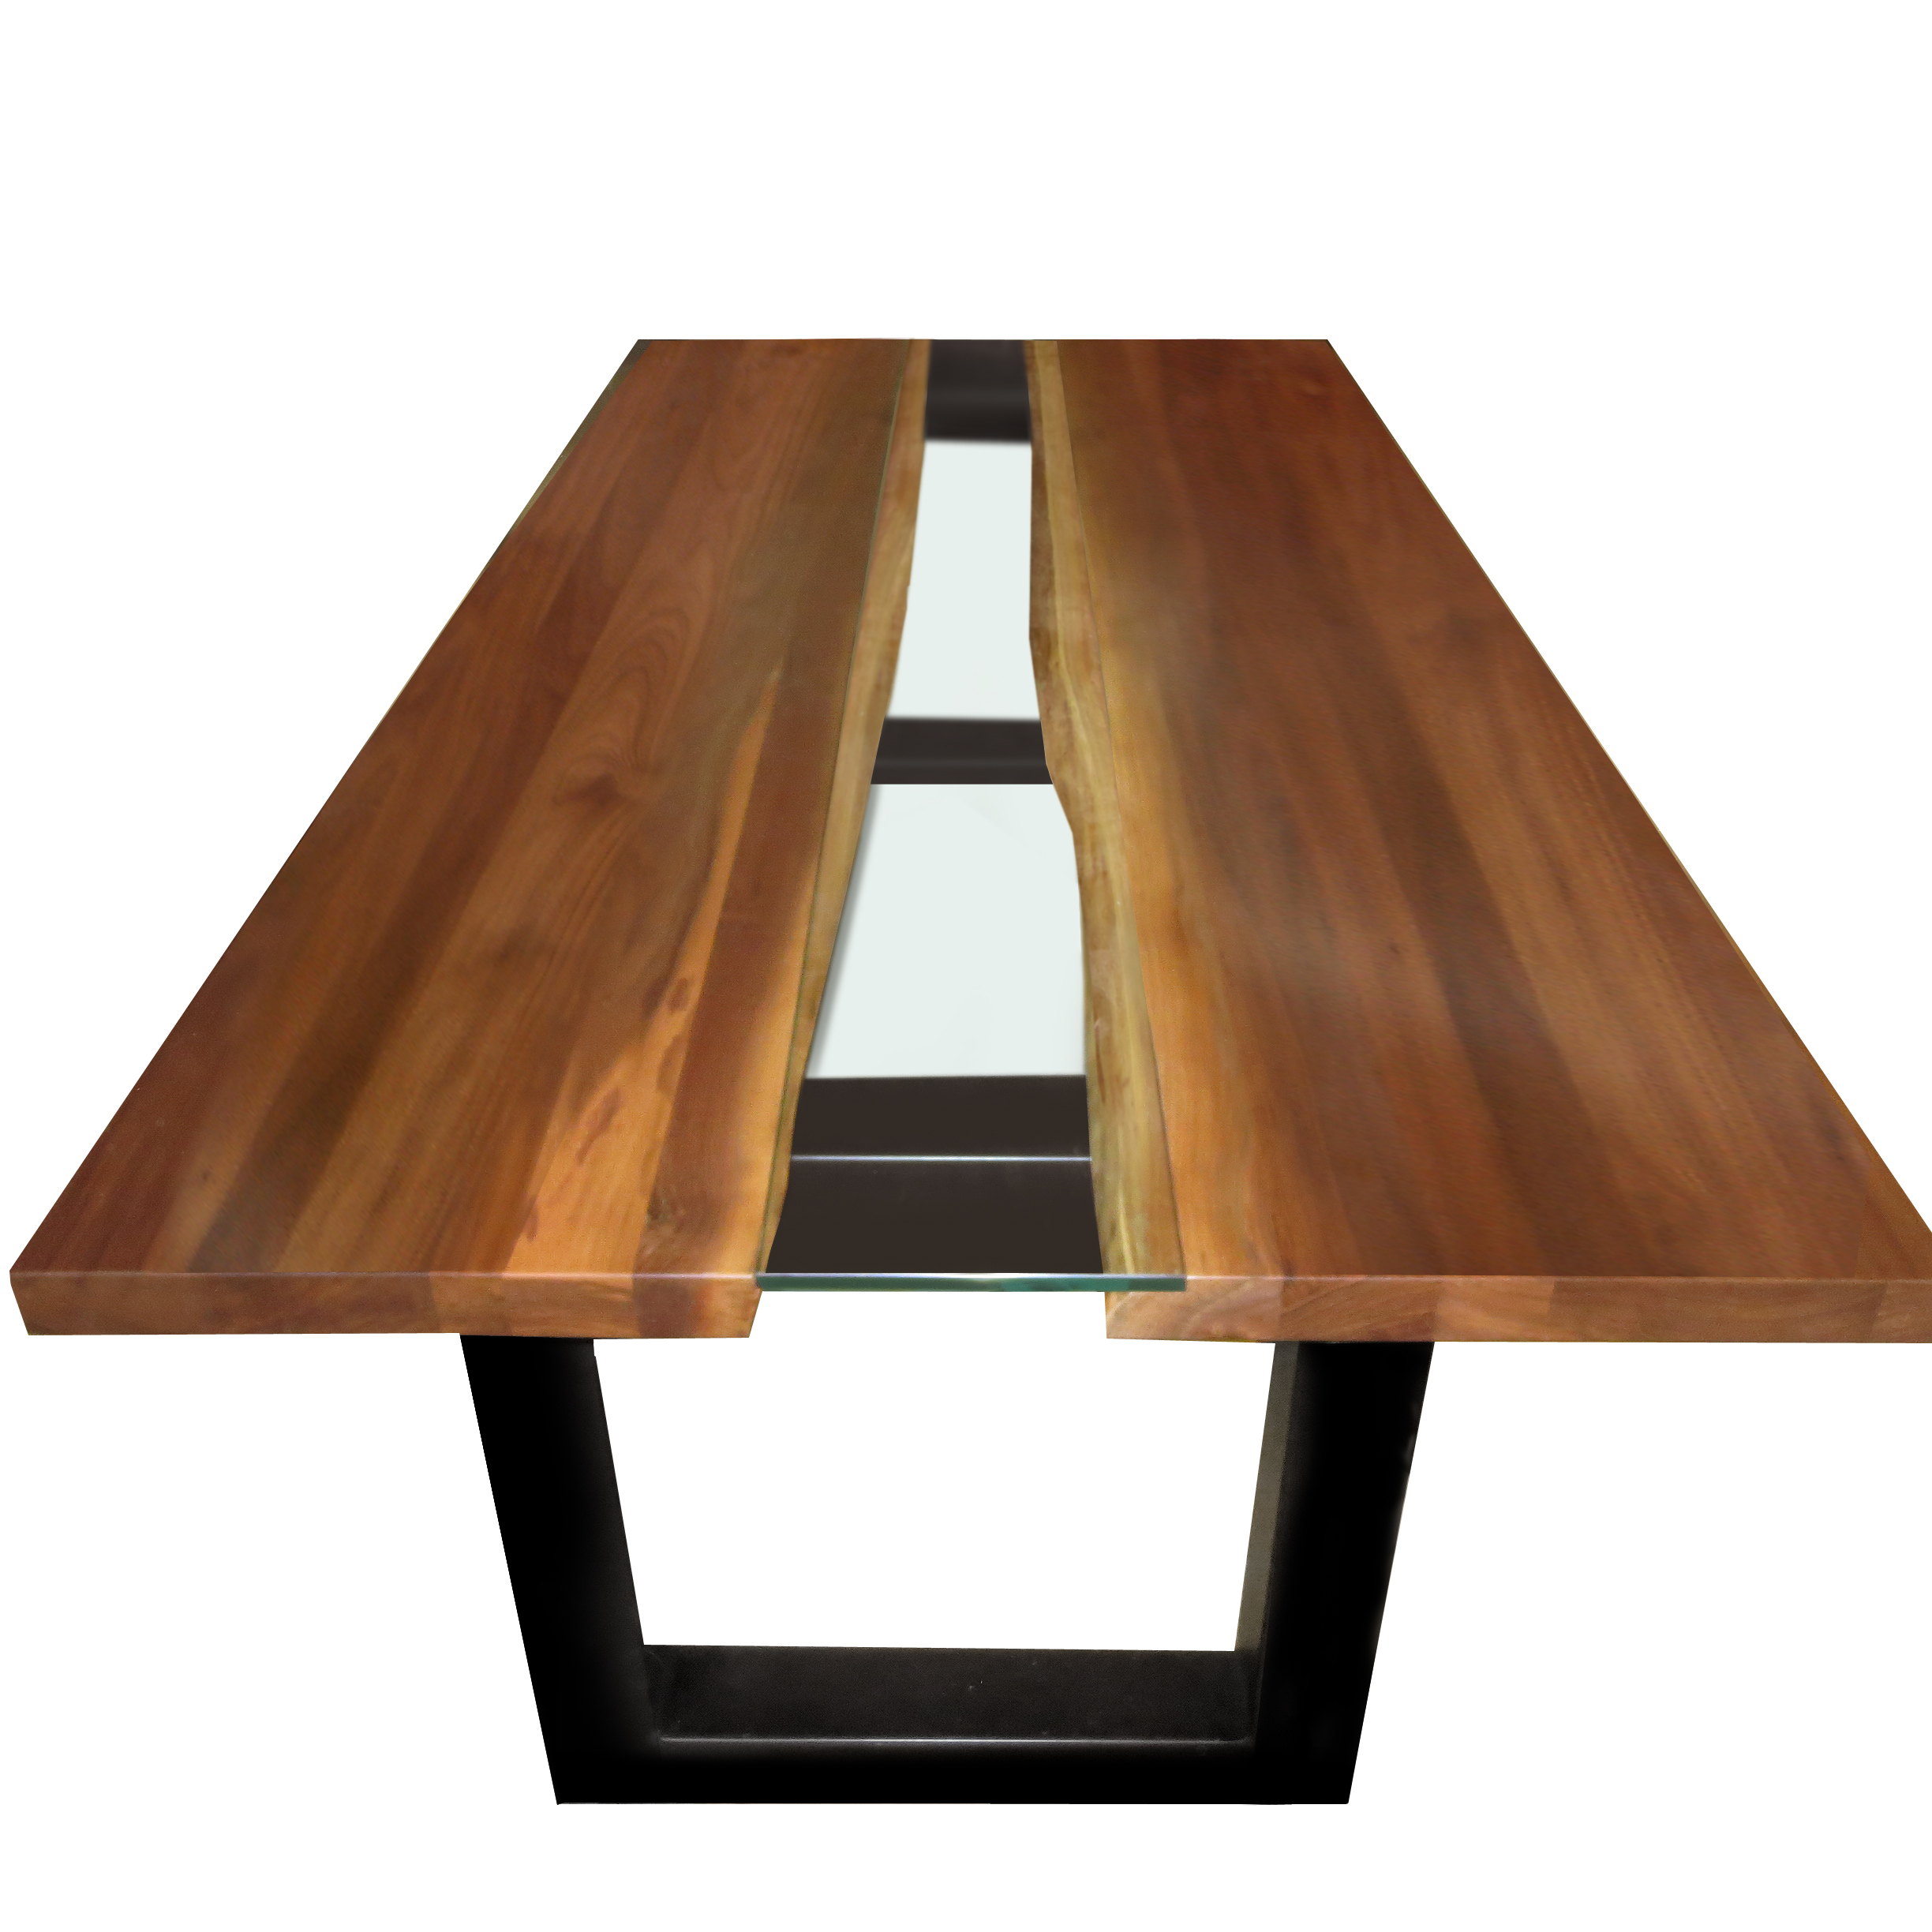 concepts table products threyda apparel and ripple art cerebral wood